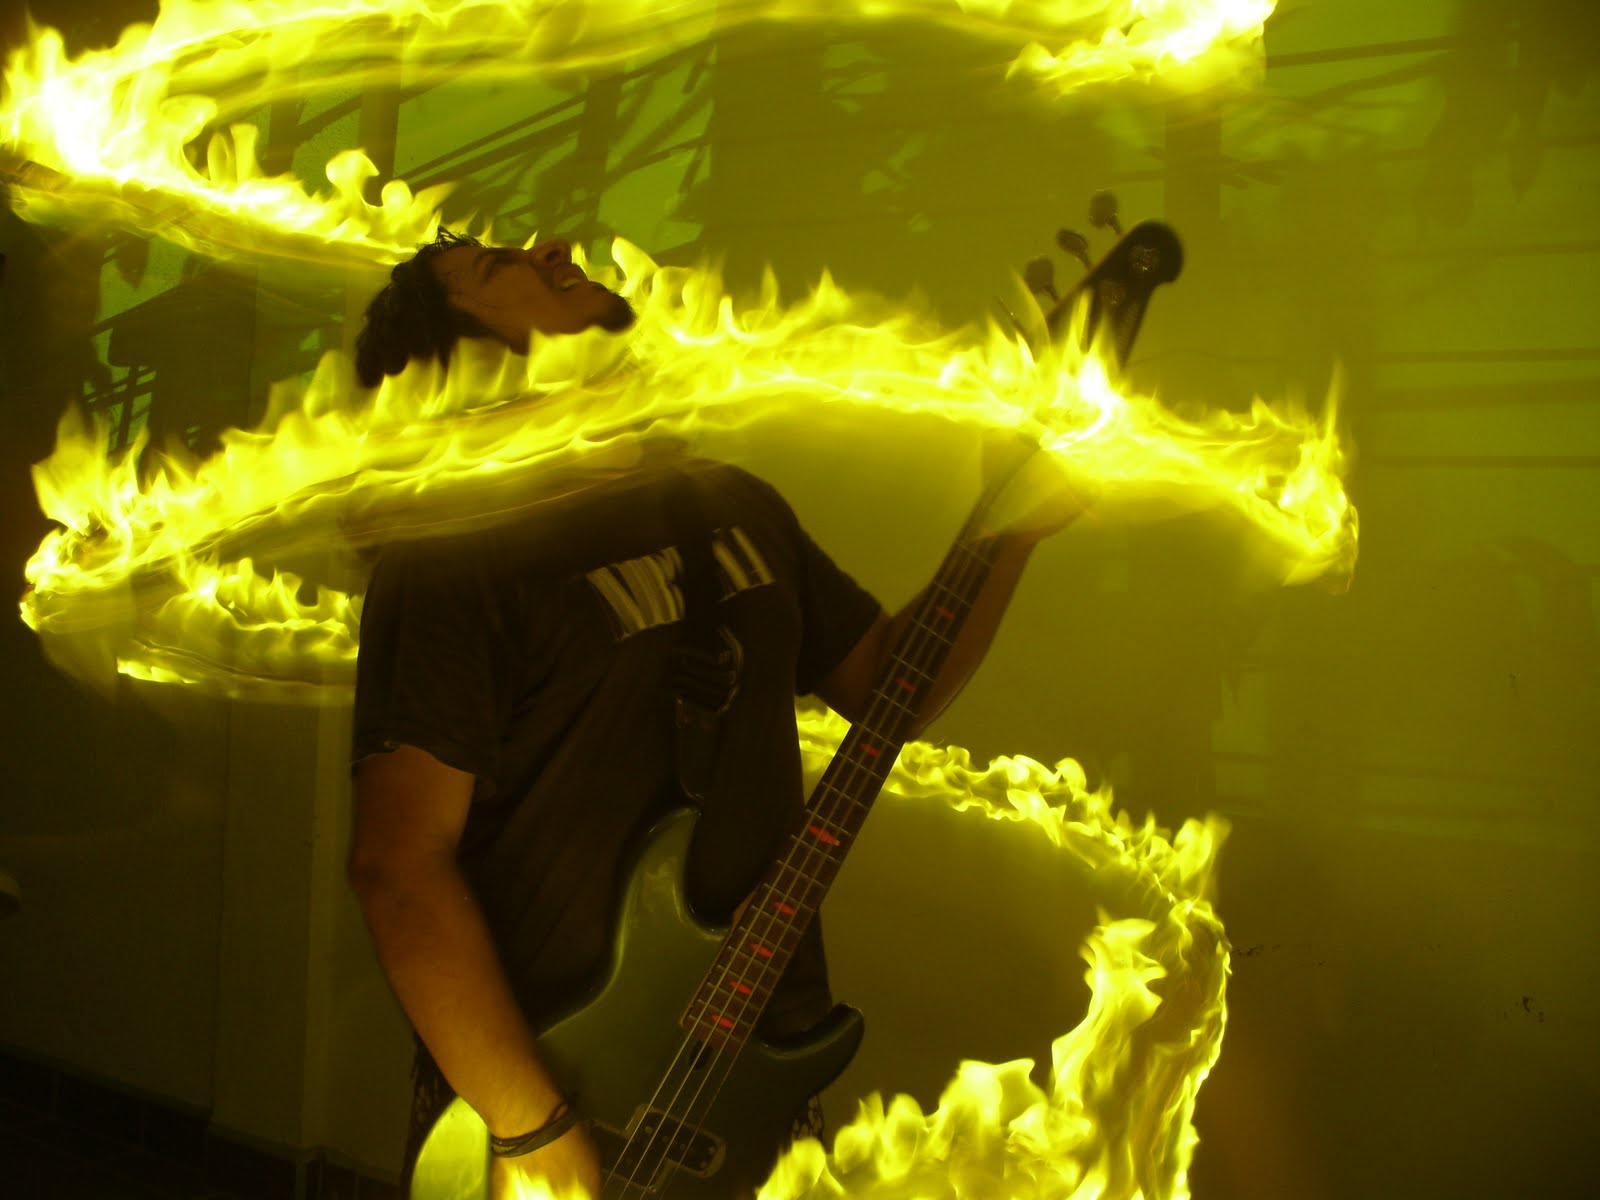 Light Painting!! FIRE!